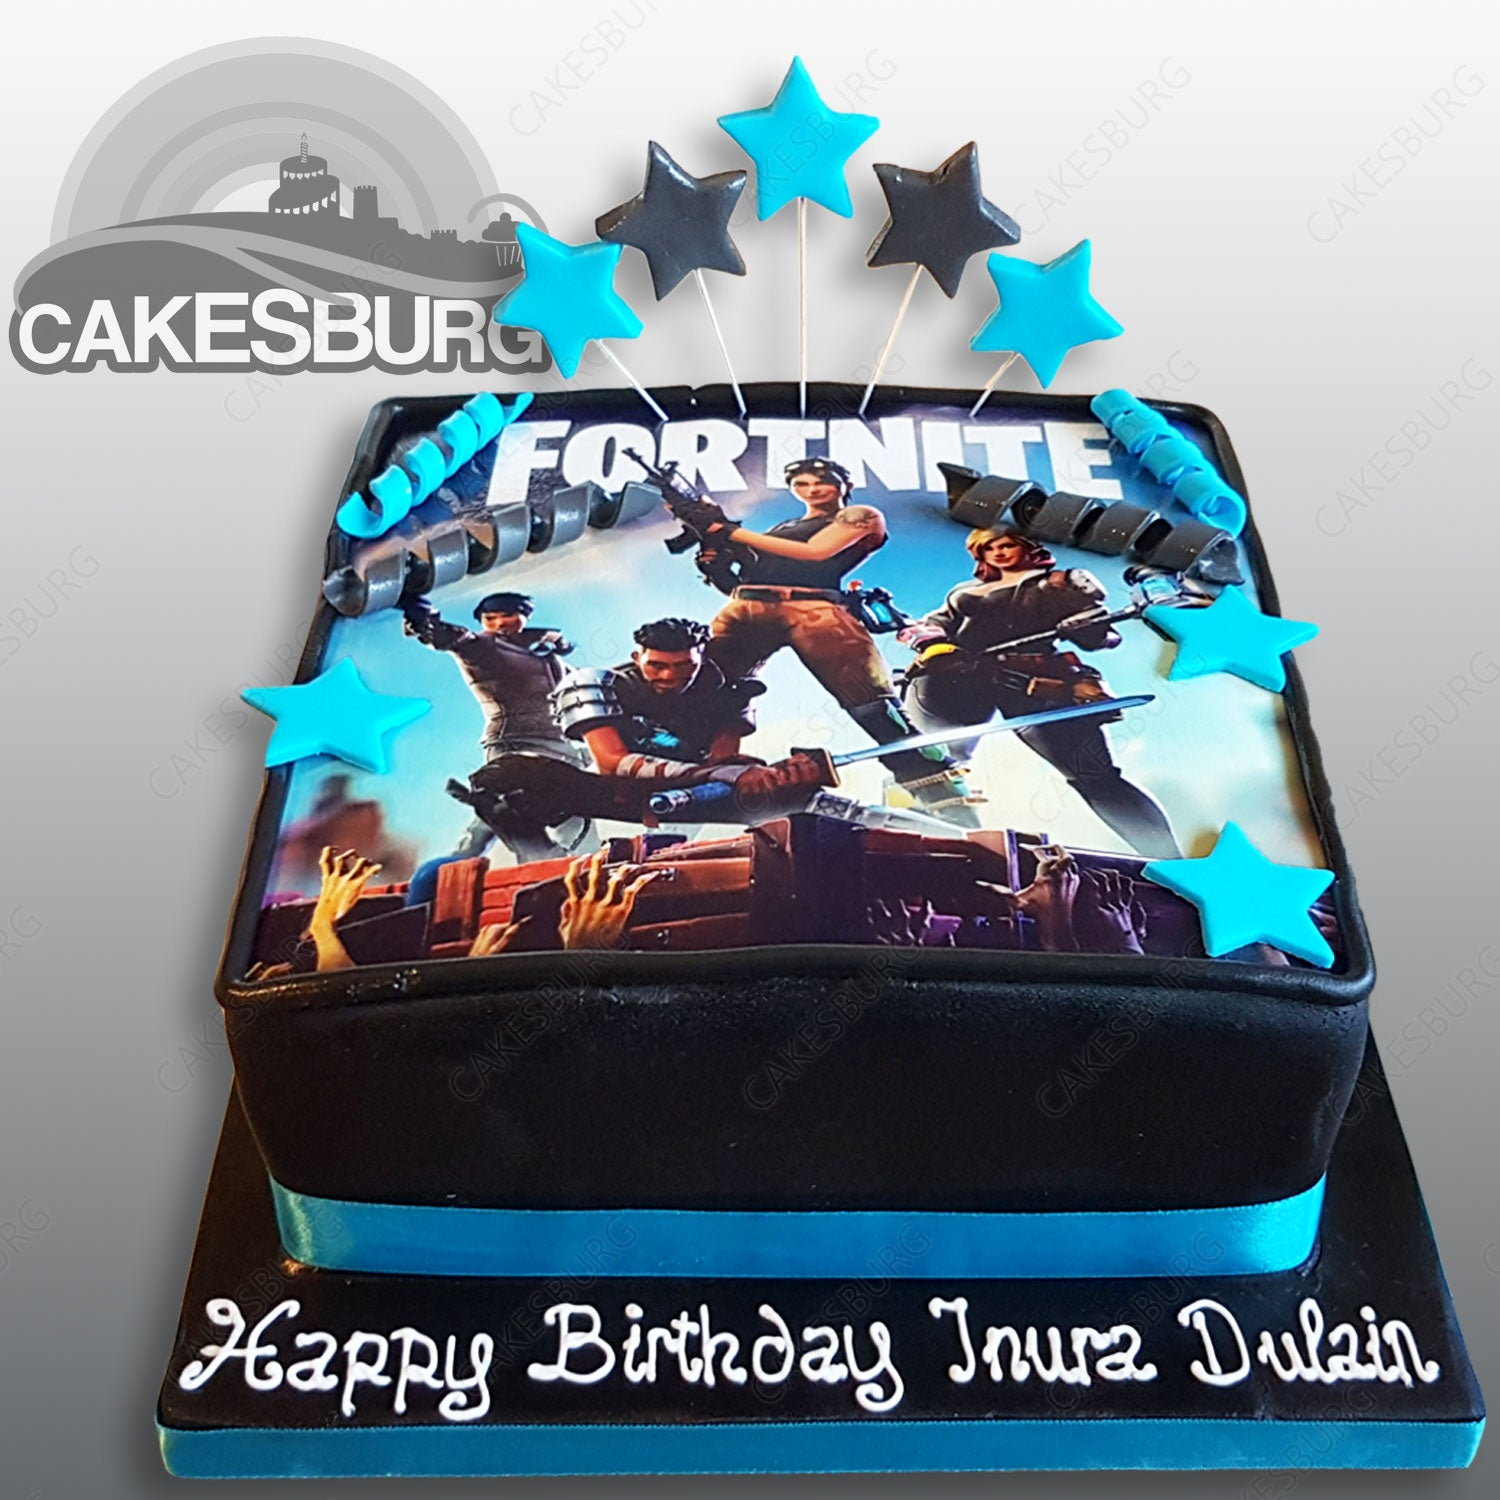 Fortnite Cake 1 Cakesburg Online Premium Cake Shop Guide to complete fortnite's dance in front of 10 different birthday cakes 2019 second anniversary birthday challenge. gbp